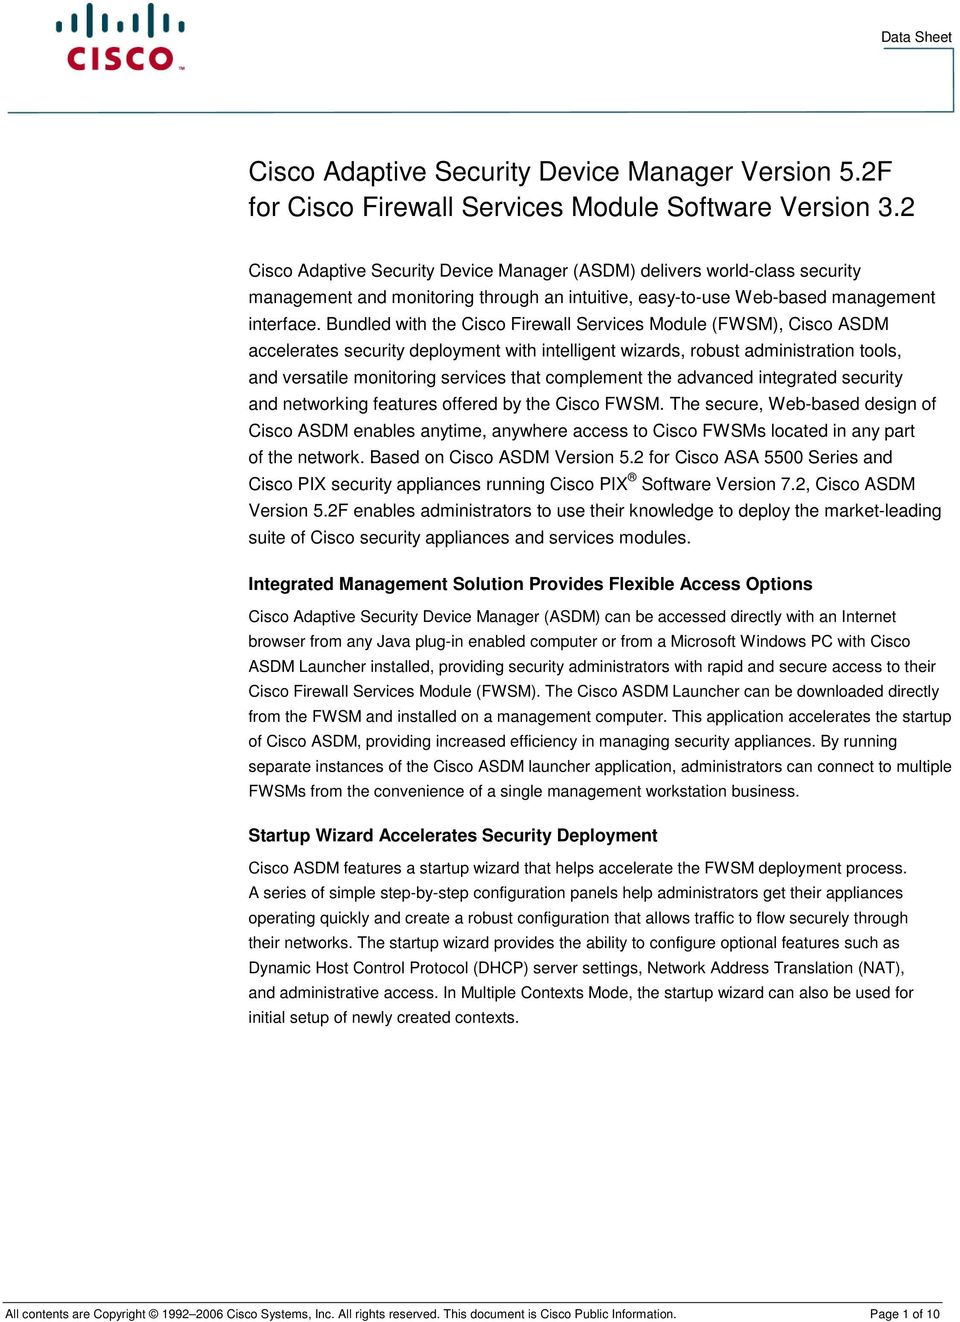 Bundled with the Cisco Firewall Services Module (FWSM), Cisco ASDM accelerates security deployment with intelligent wizards, robust administration tools, and versatile monitoring services that